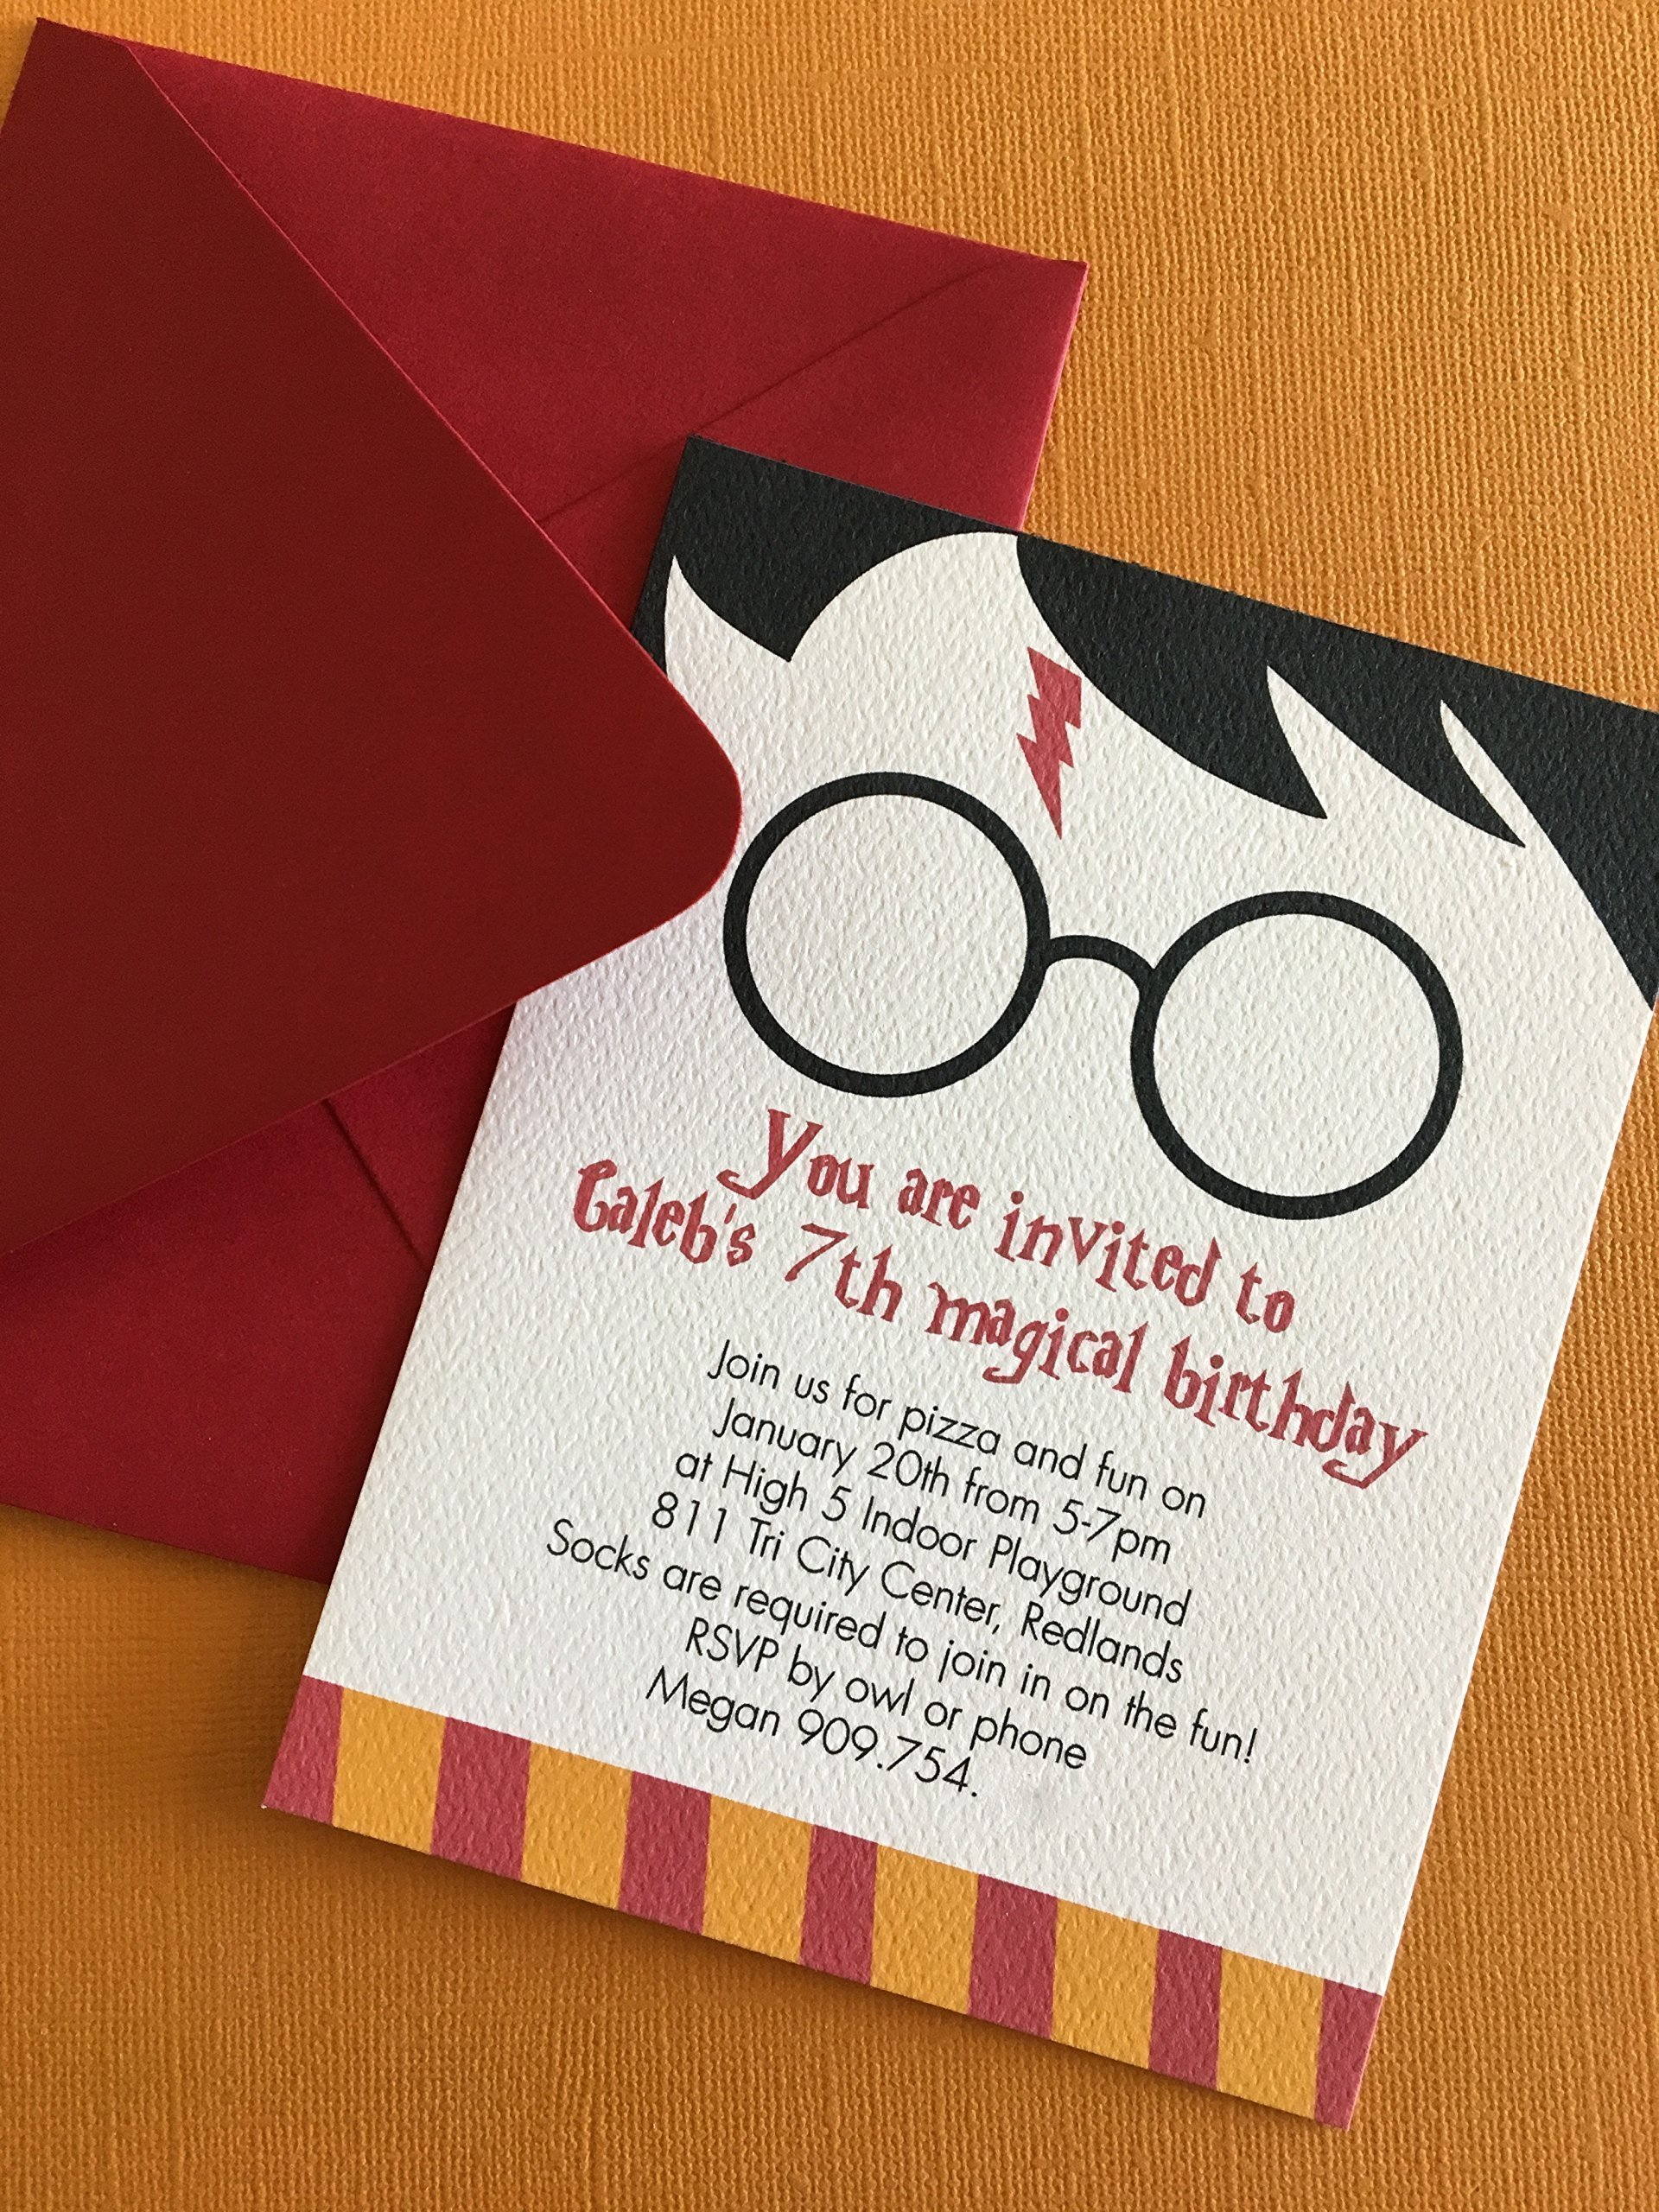 Harry Potter themed birthday party invitation, set of 12, magic, witch, school of witchcraft, kids birthdays, printed invitations